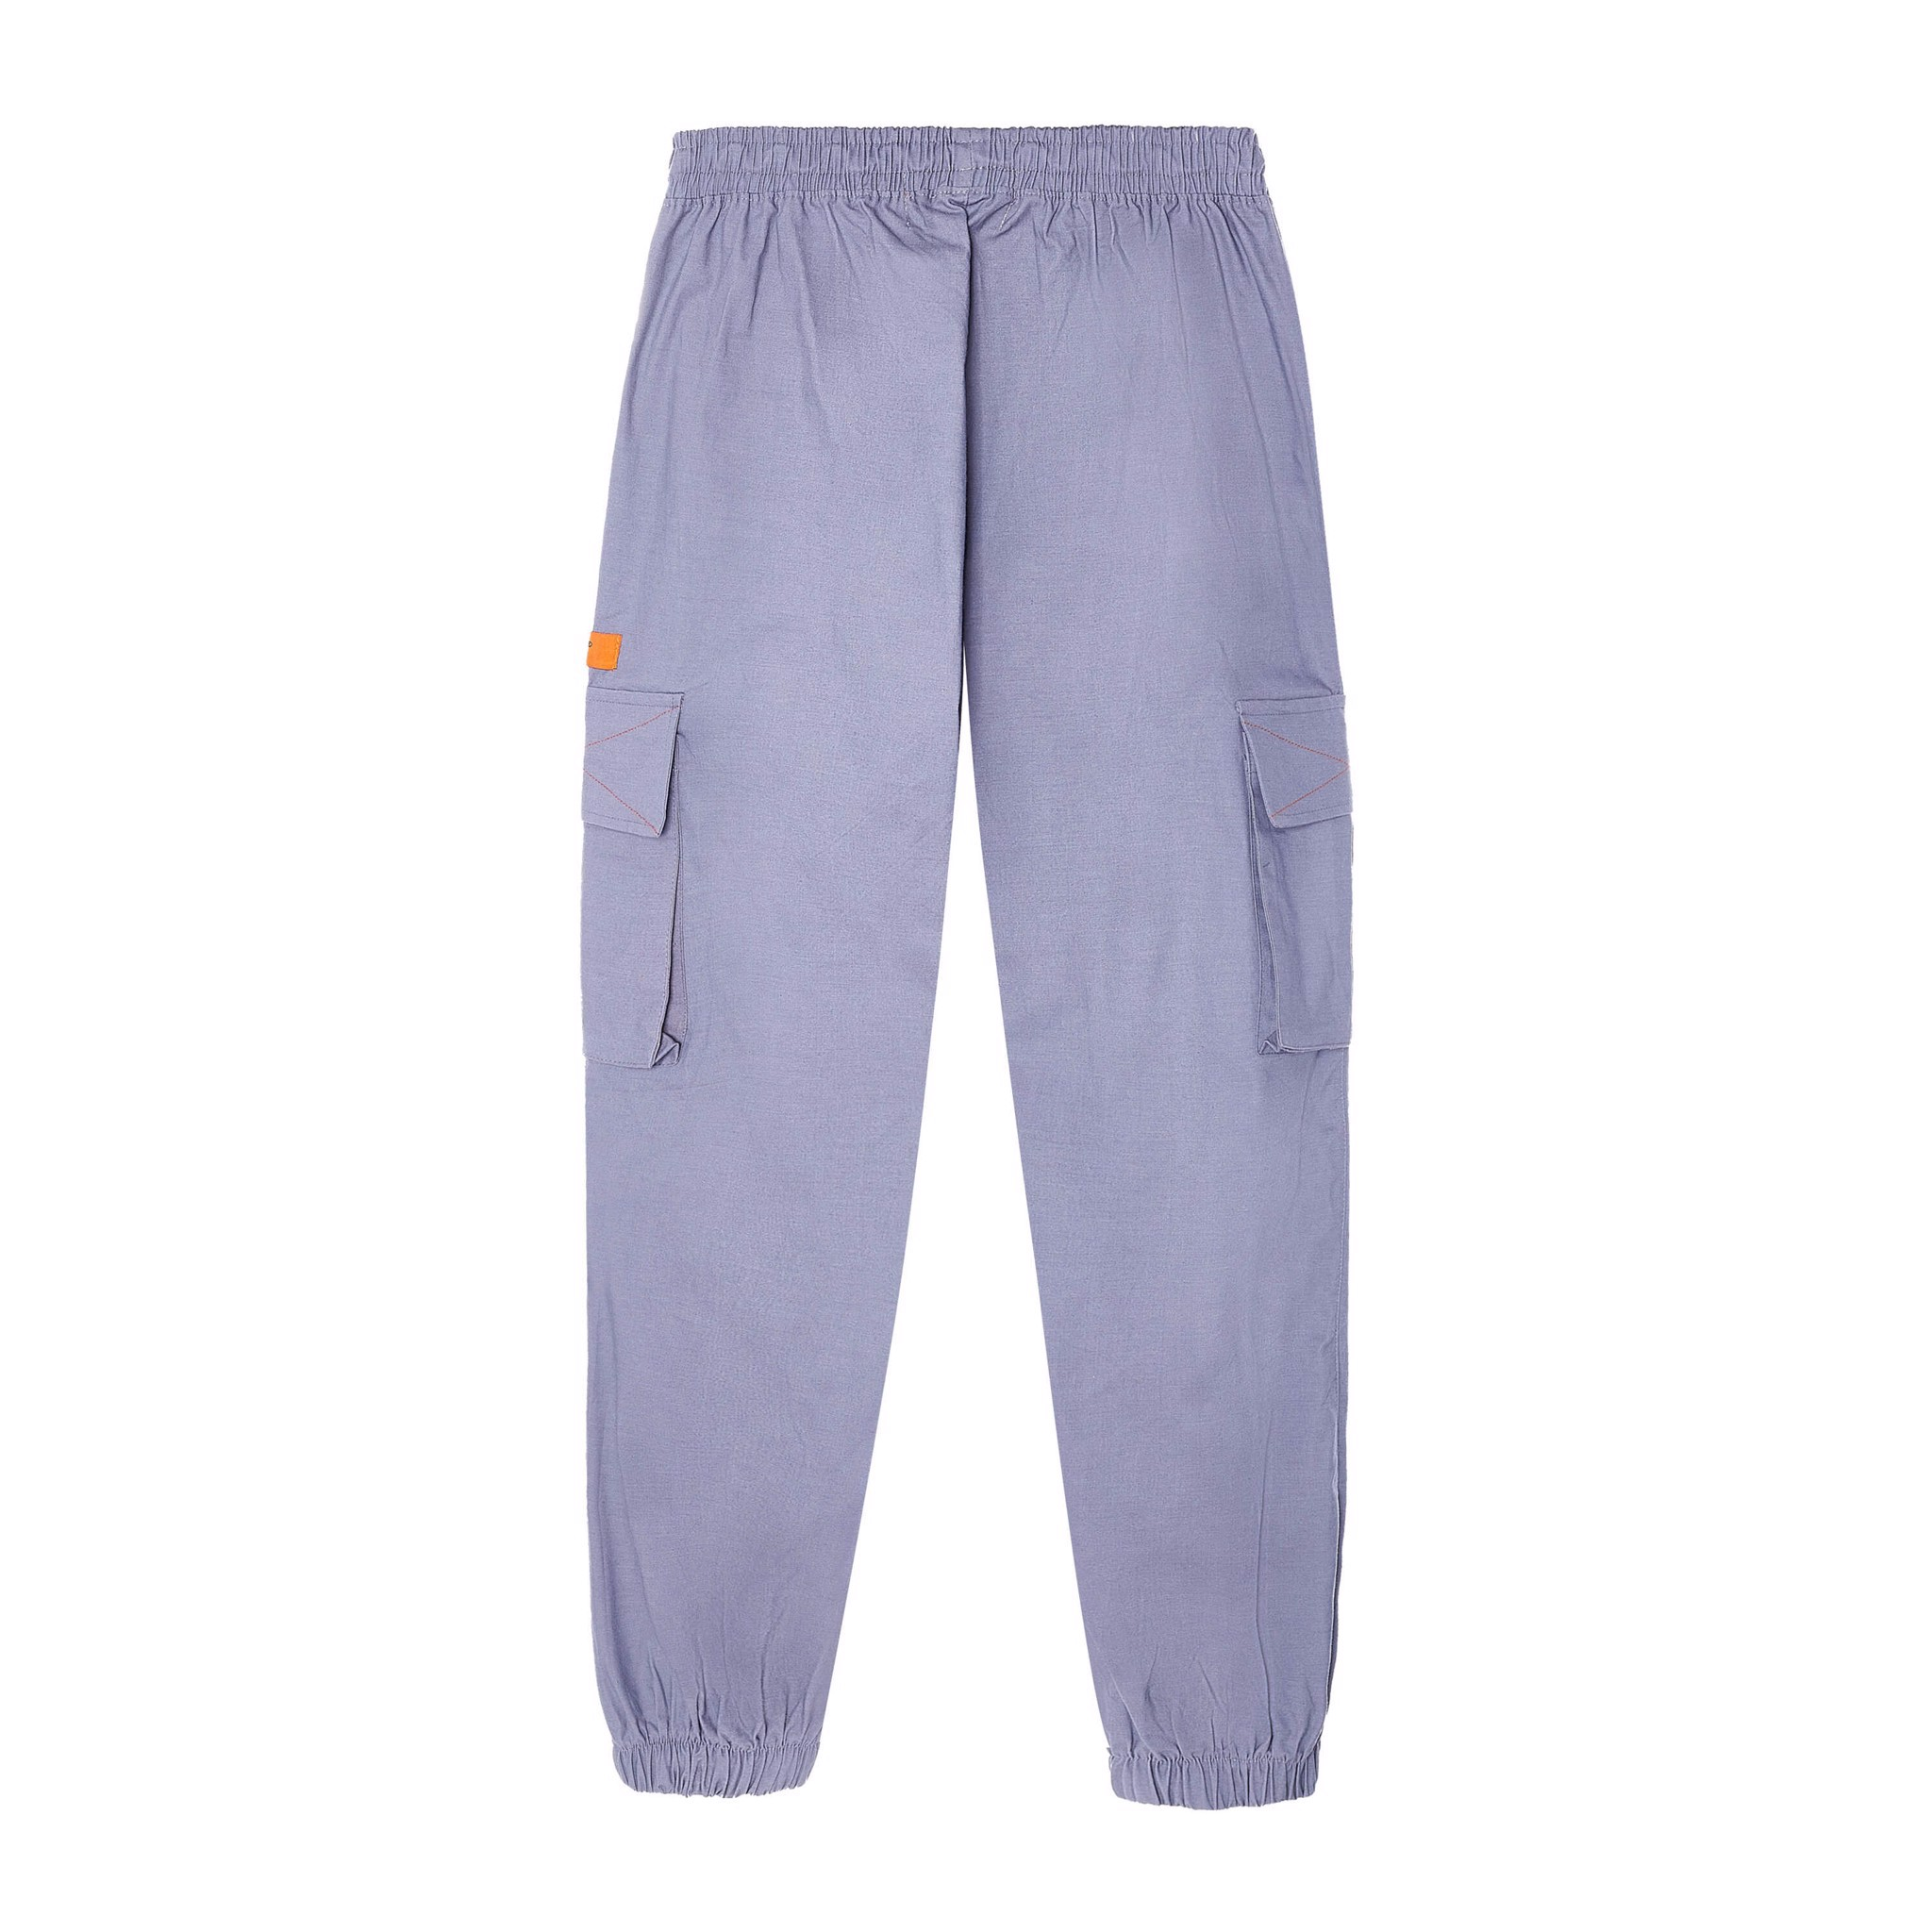 EMC Jogger Pants - Dark Grey